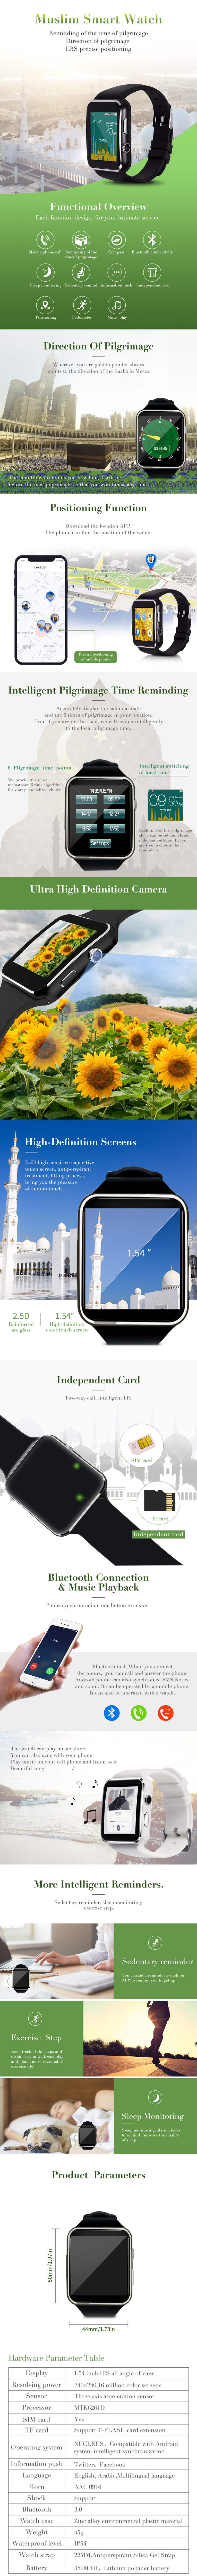 Islamic Muslim prayer time alarms smart watch with automatic Qibla compass digital wristwatch